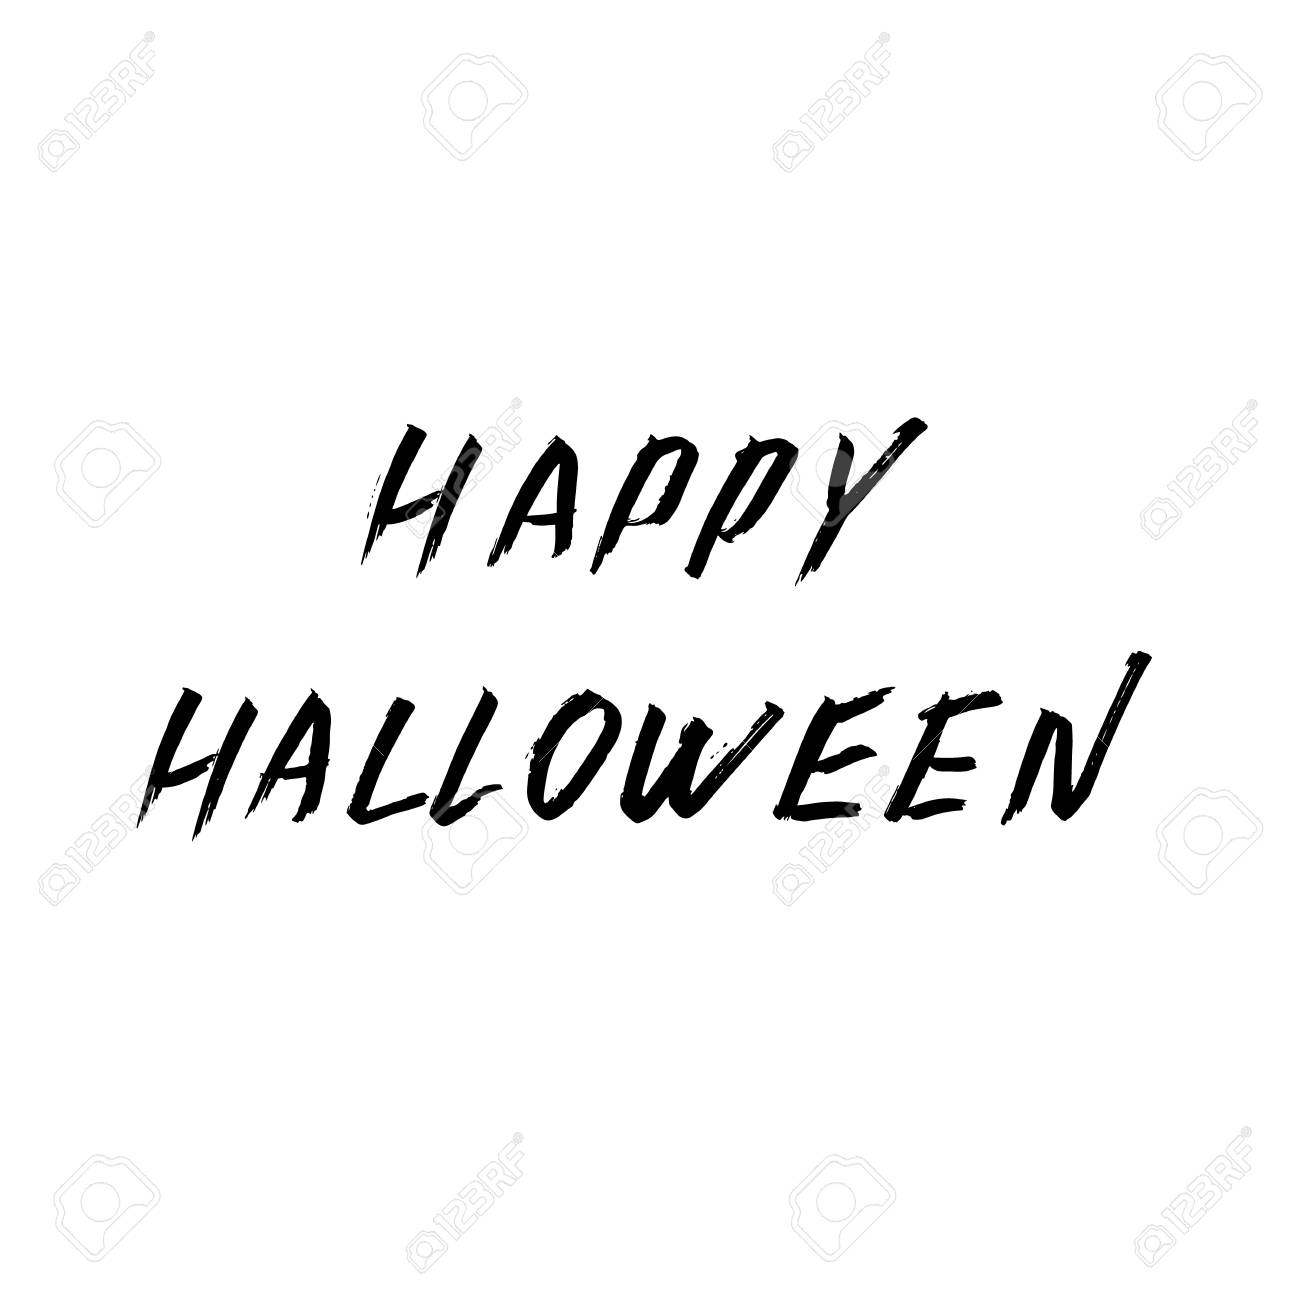 Happy Halloween Hand Written With Brush Grunge Style Lettering